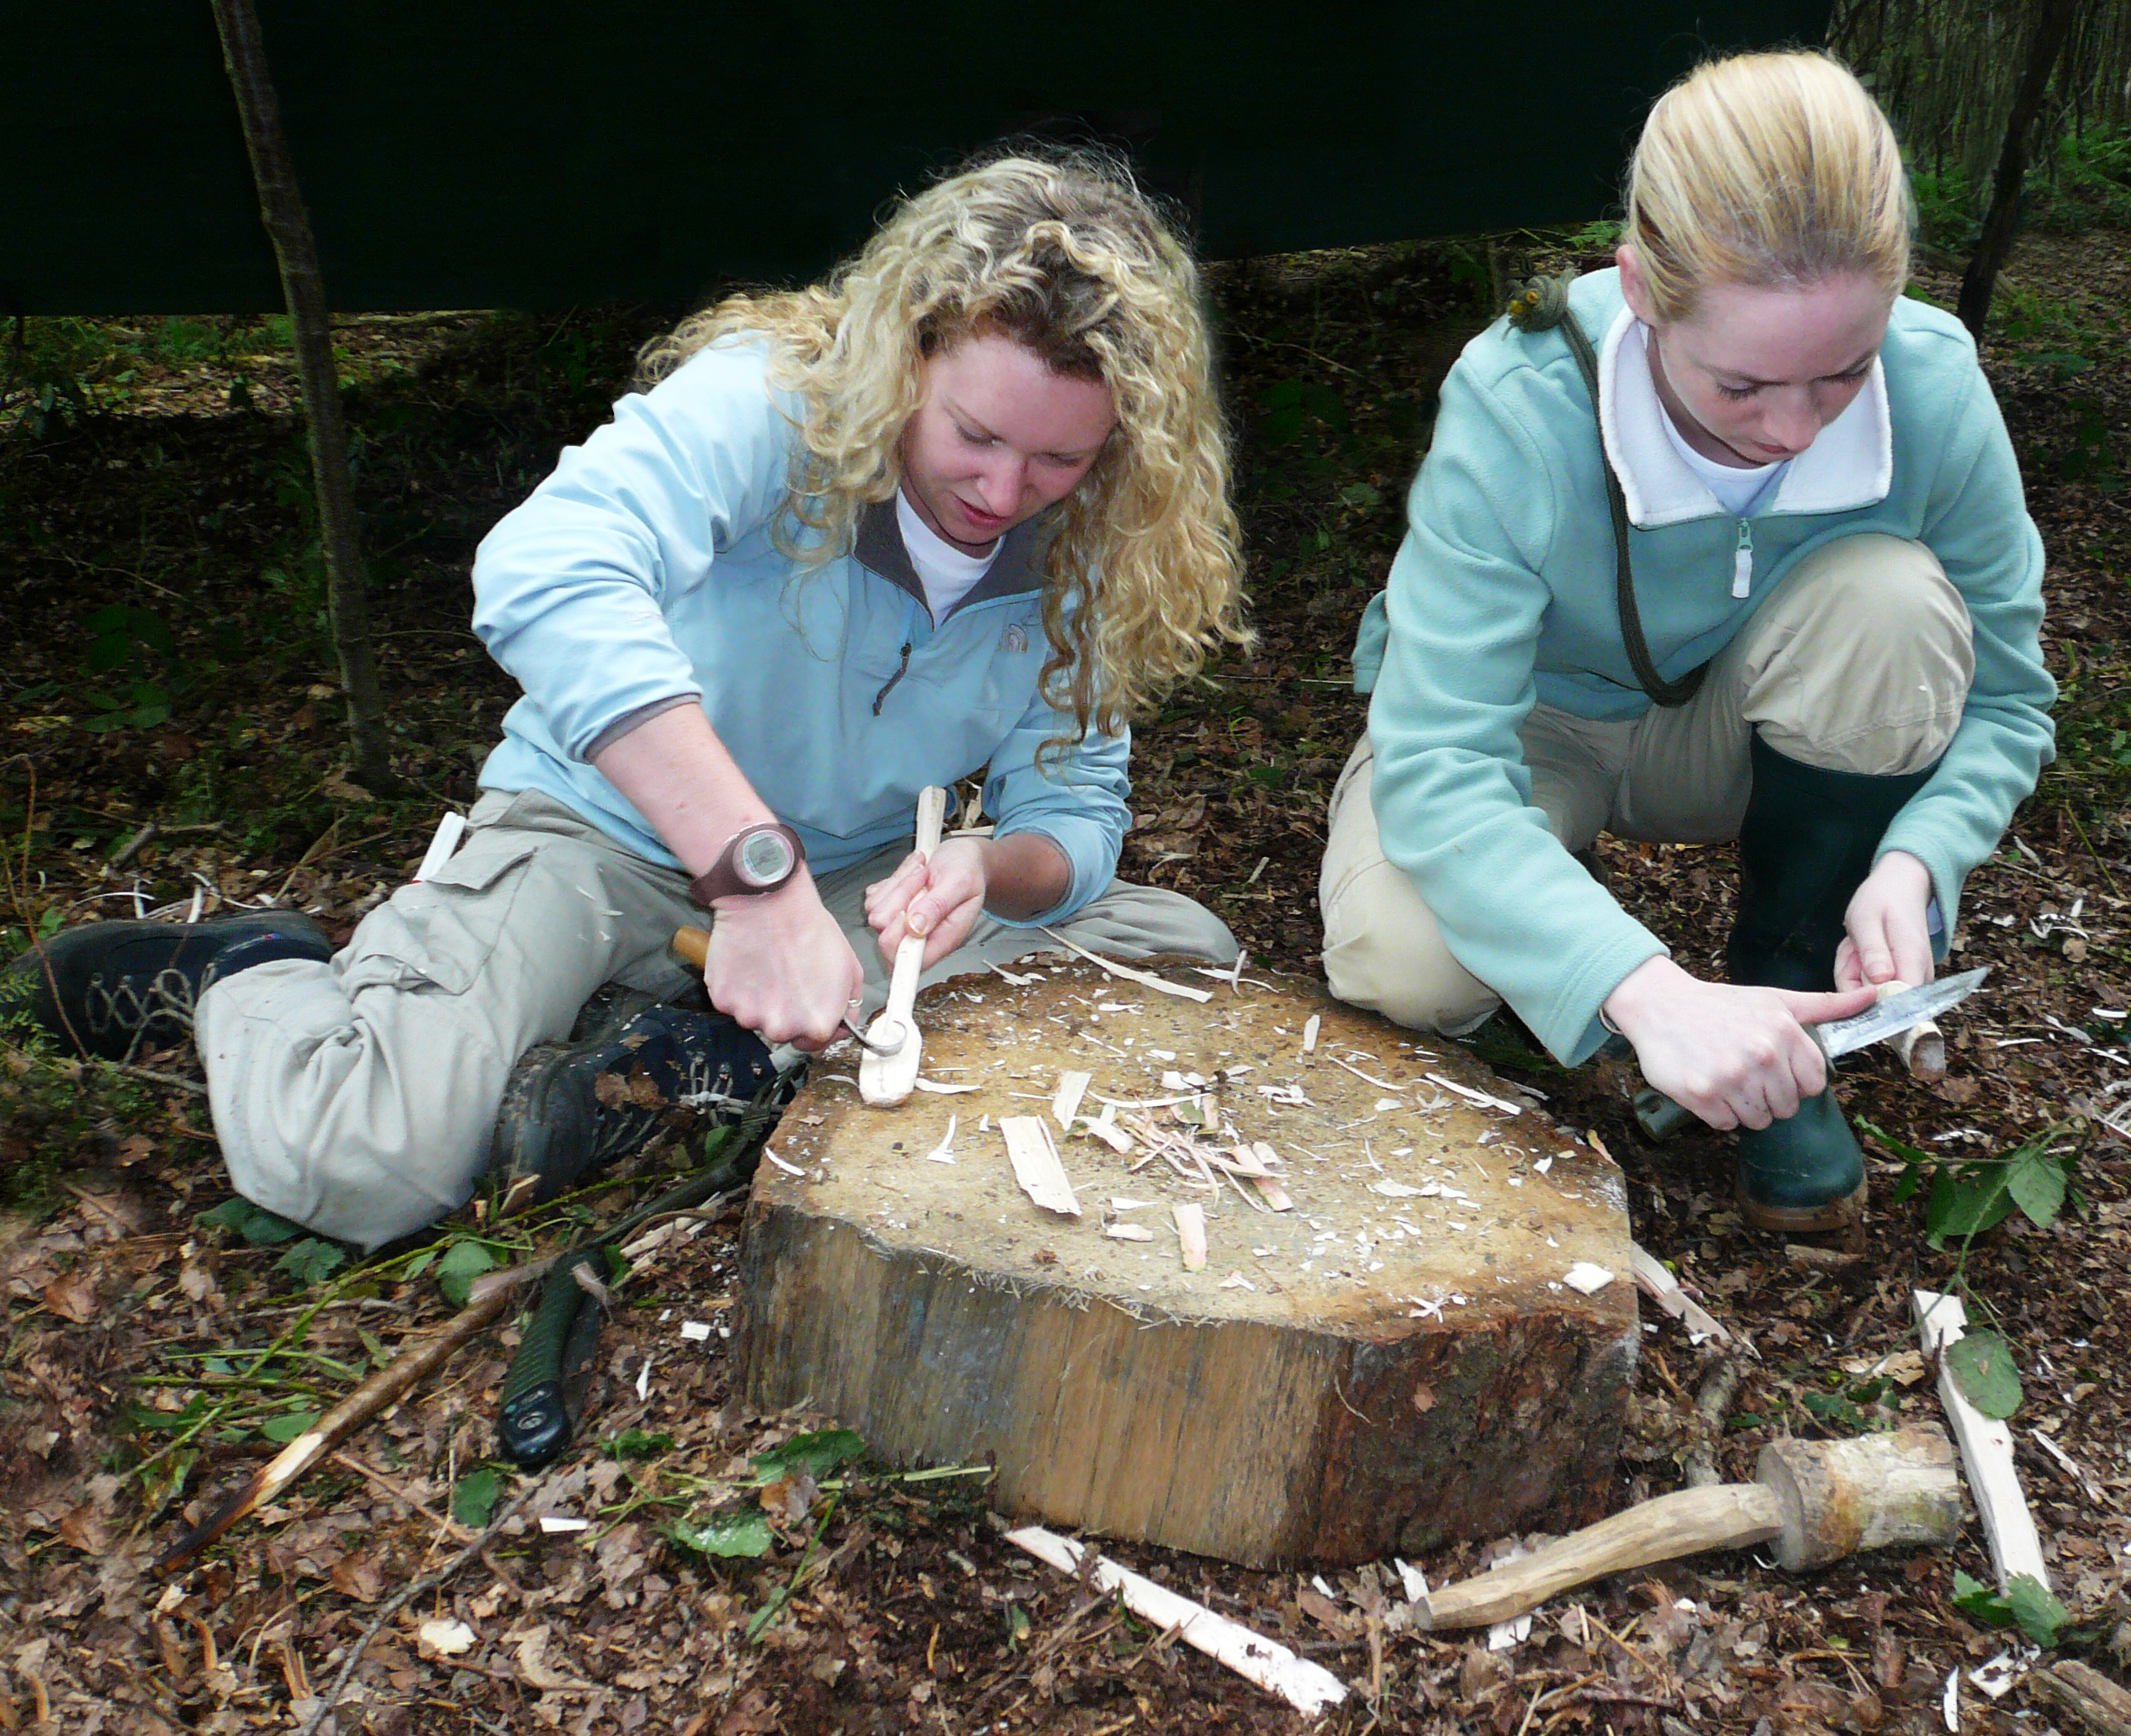 simple wood carving day course